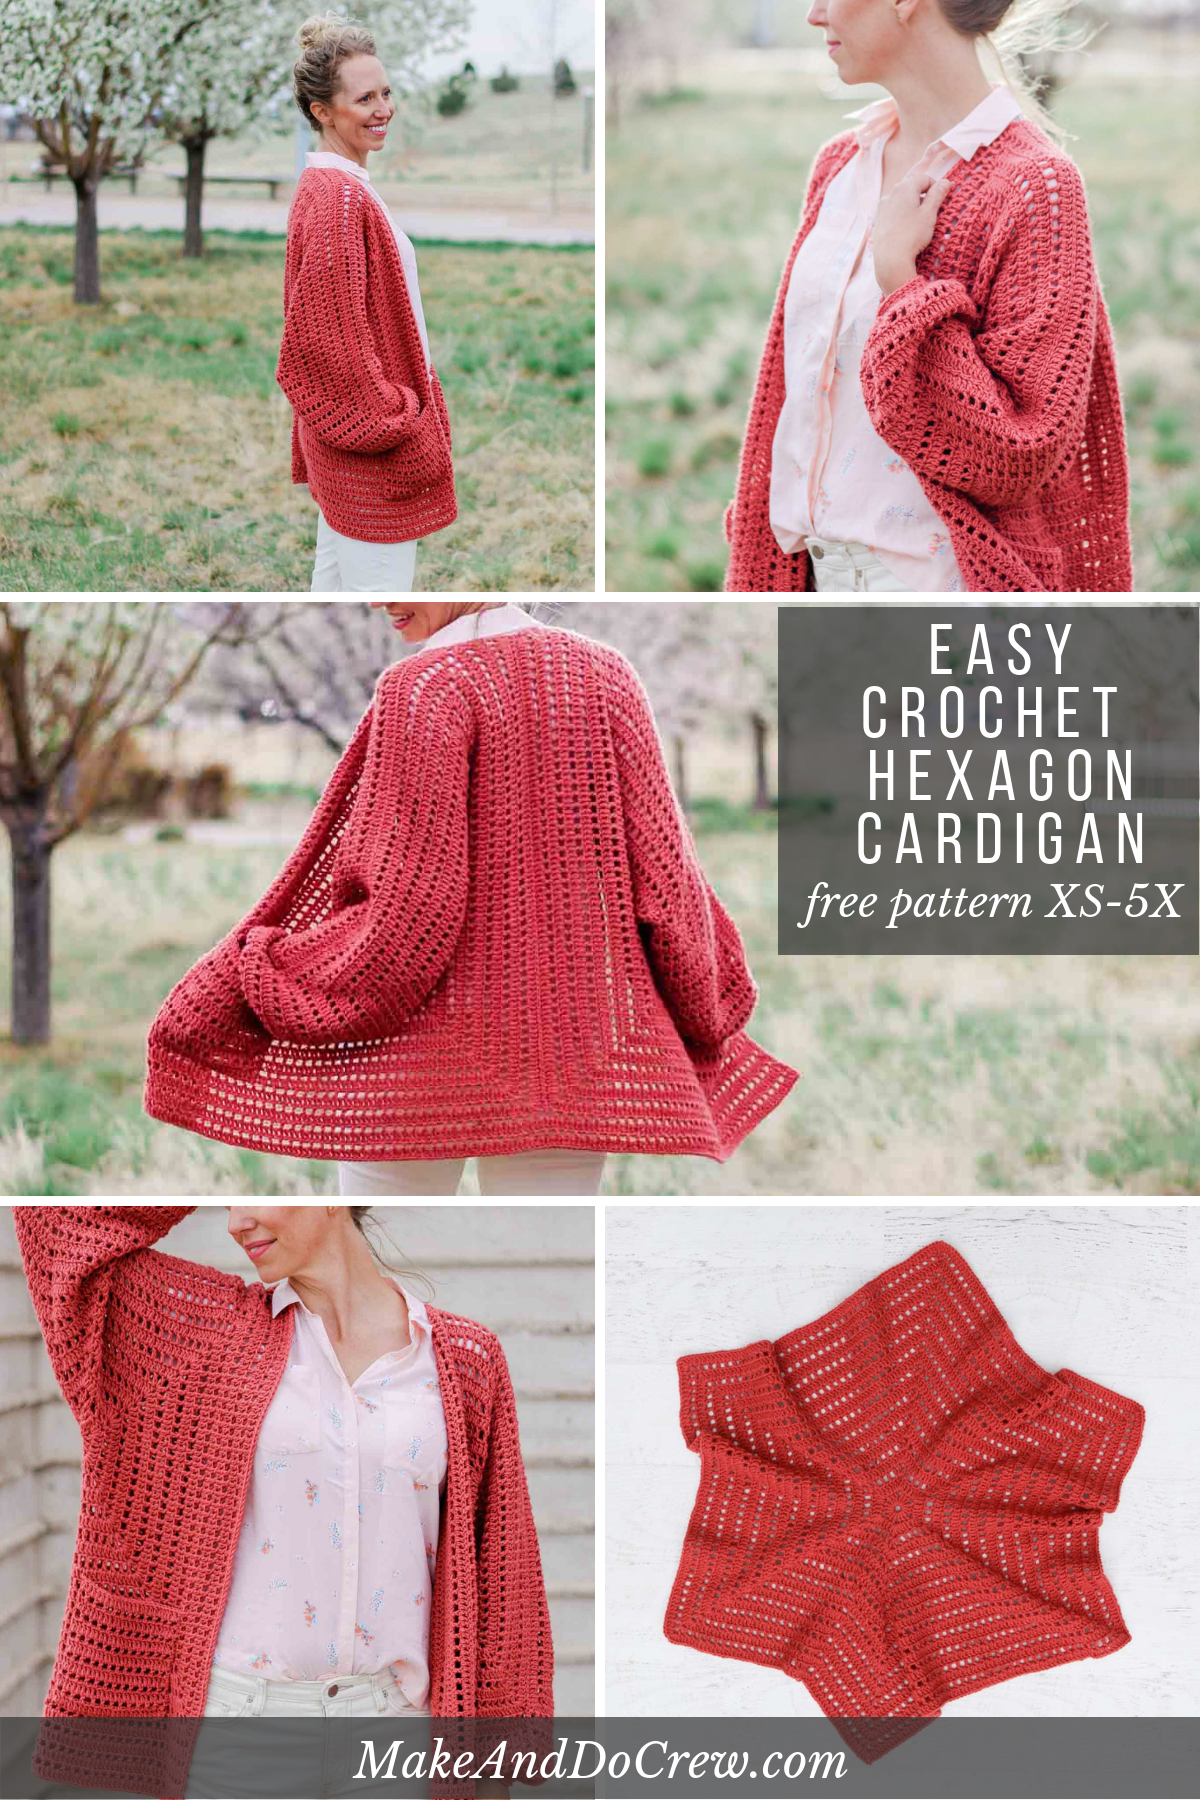 e5c3e6a86279 Two simple crochet hexagons transform into a lightweight